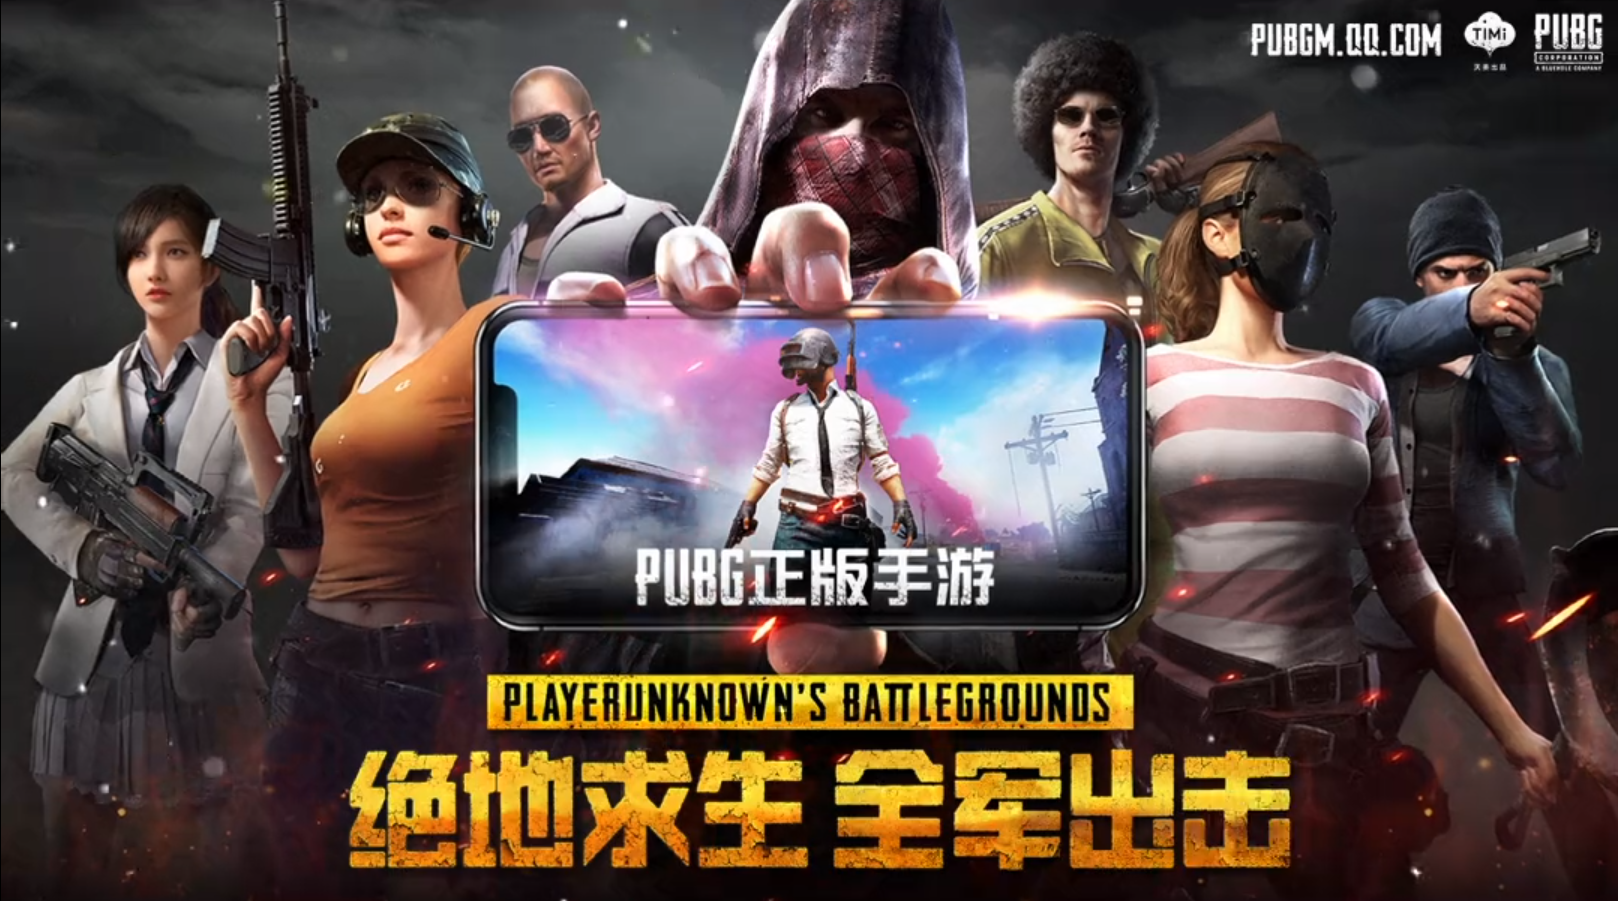 Two versions of 'PlayerUnknown's Battlegrounds' are